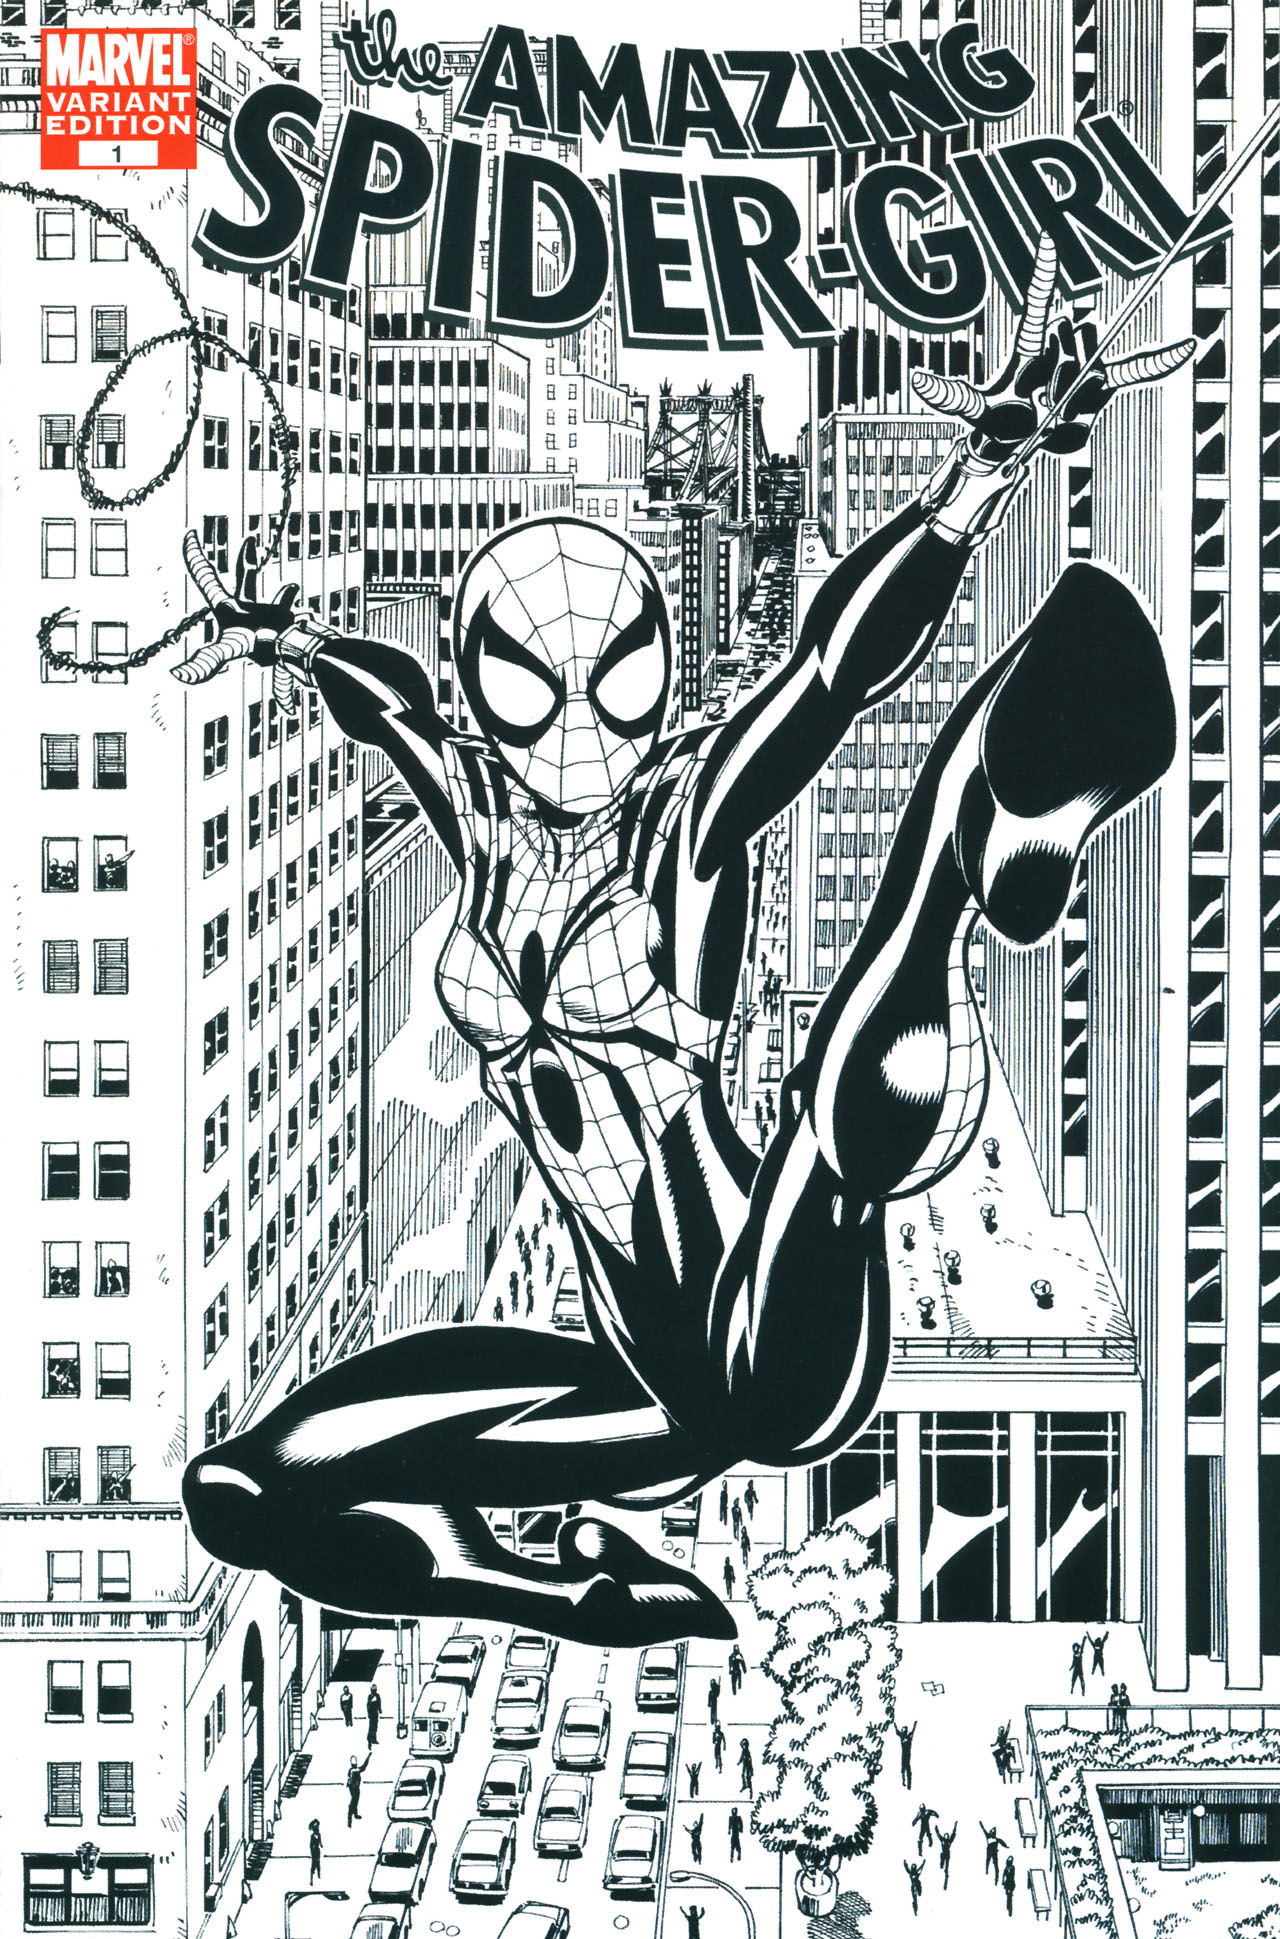 Read online Amazing Spider-Girl comic -  Issue #1 - 3